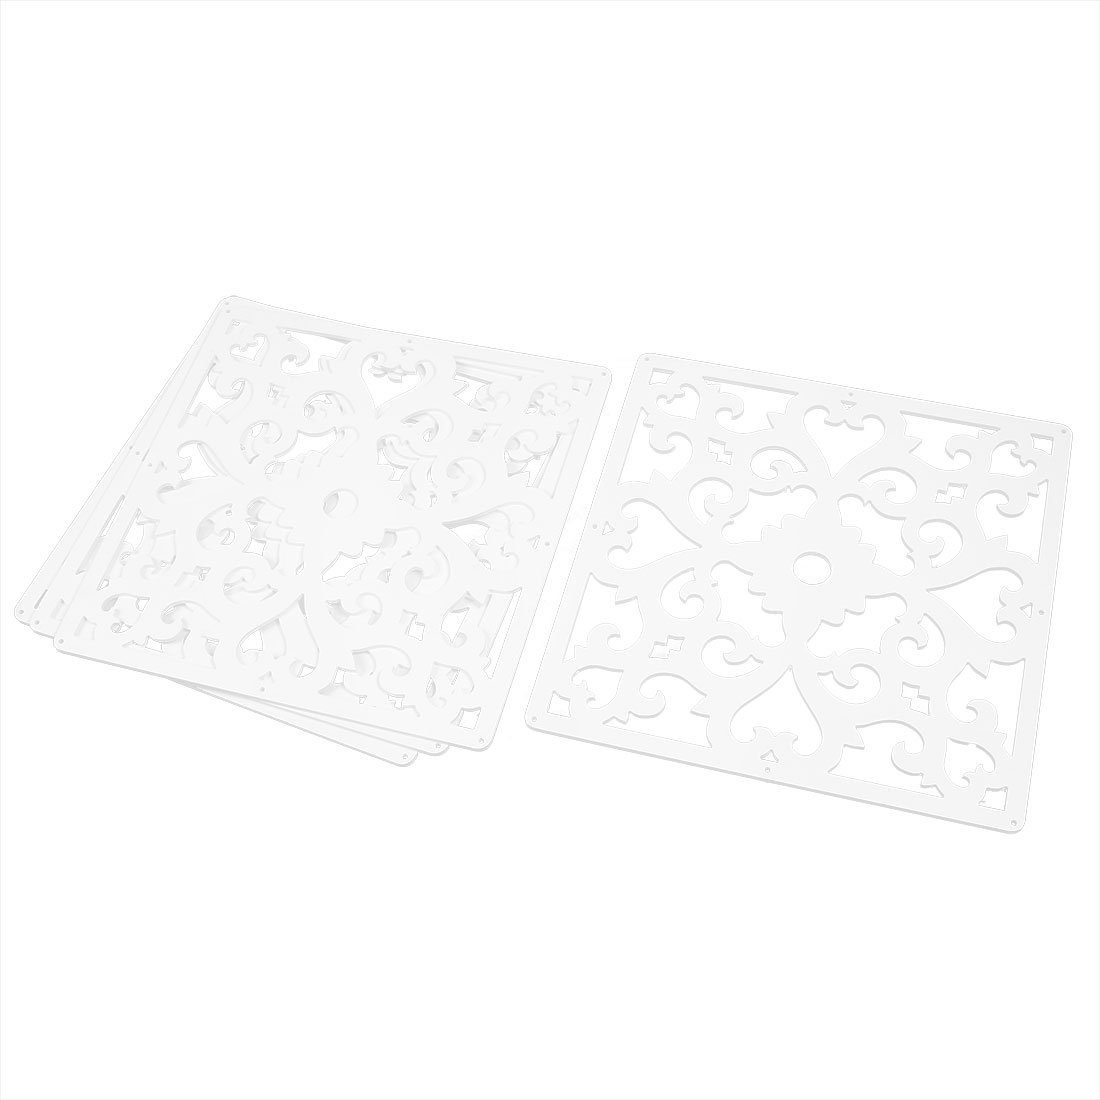 uxcell Flower Pattern Home Hall Carved Window Divider Panel Hanging Screen 4pcs White